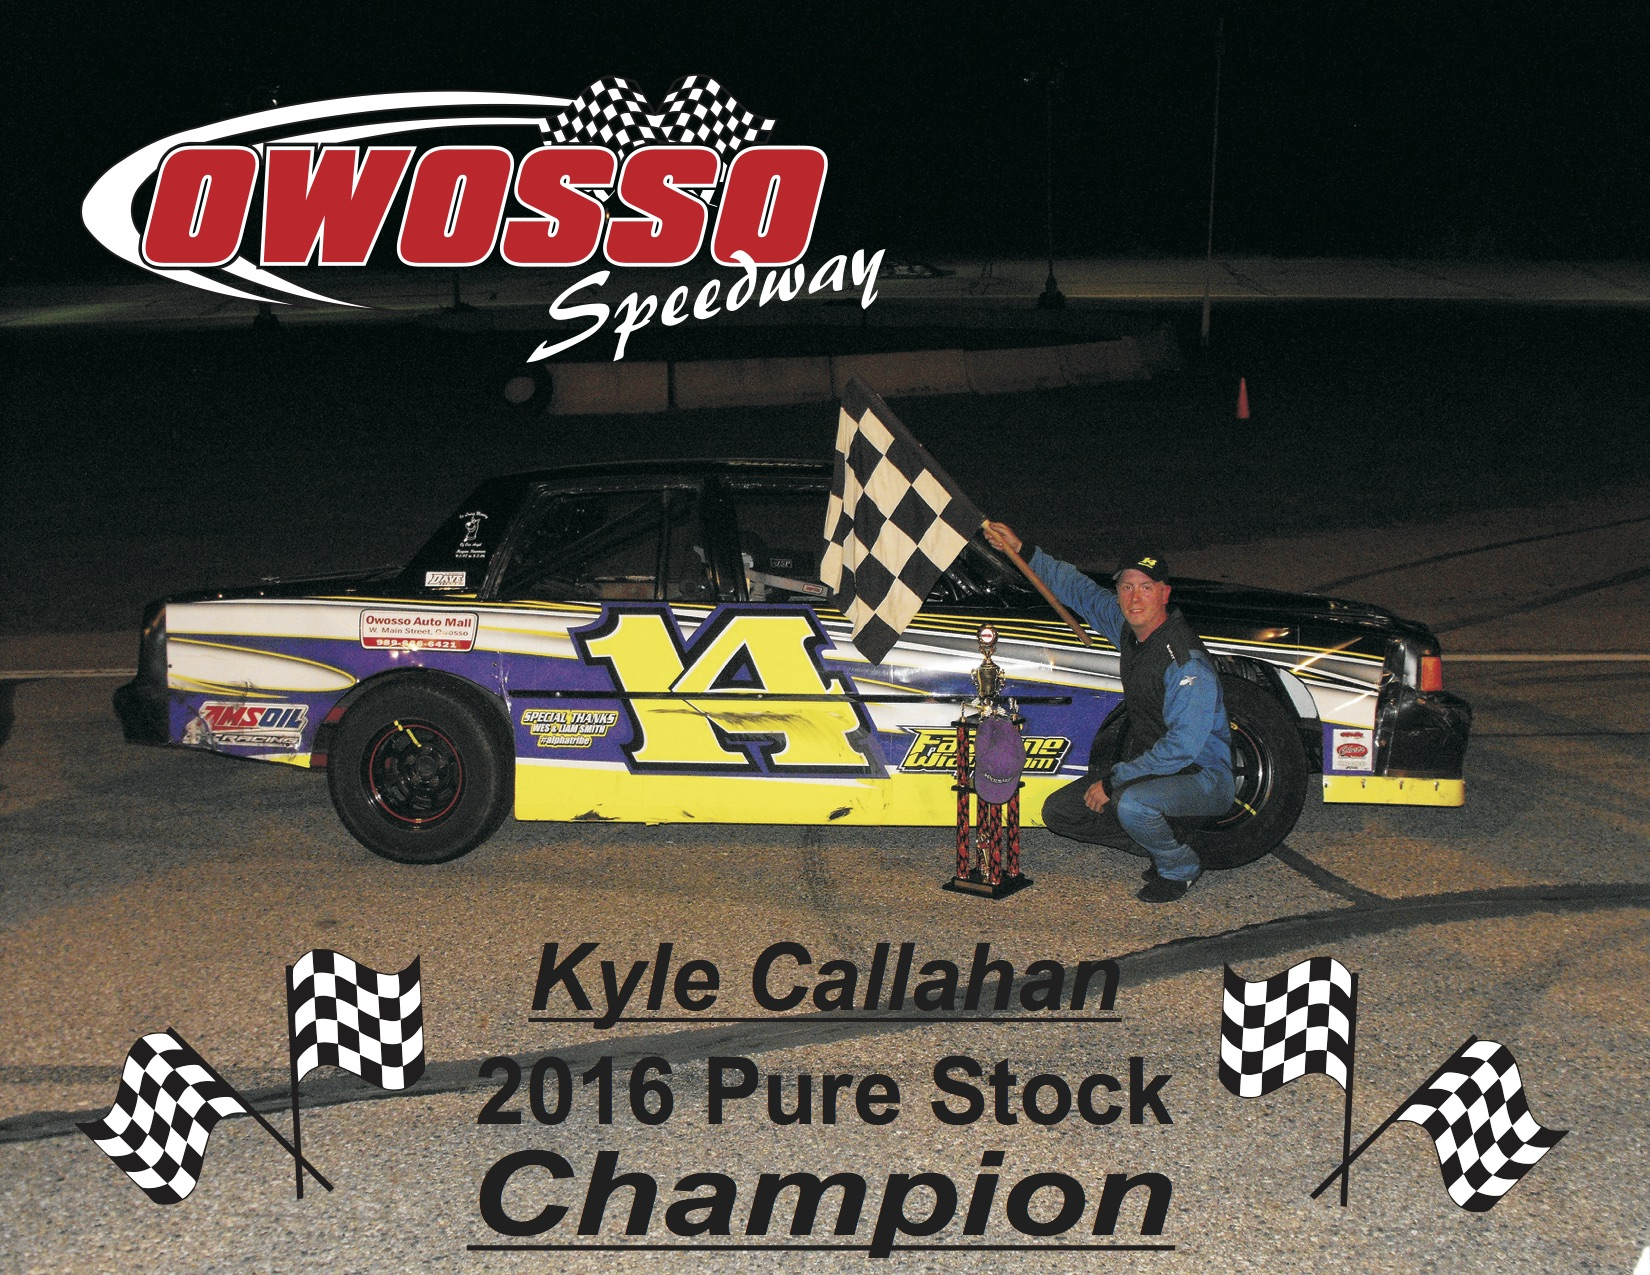 Regular Divisions – Owosso Speedway